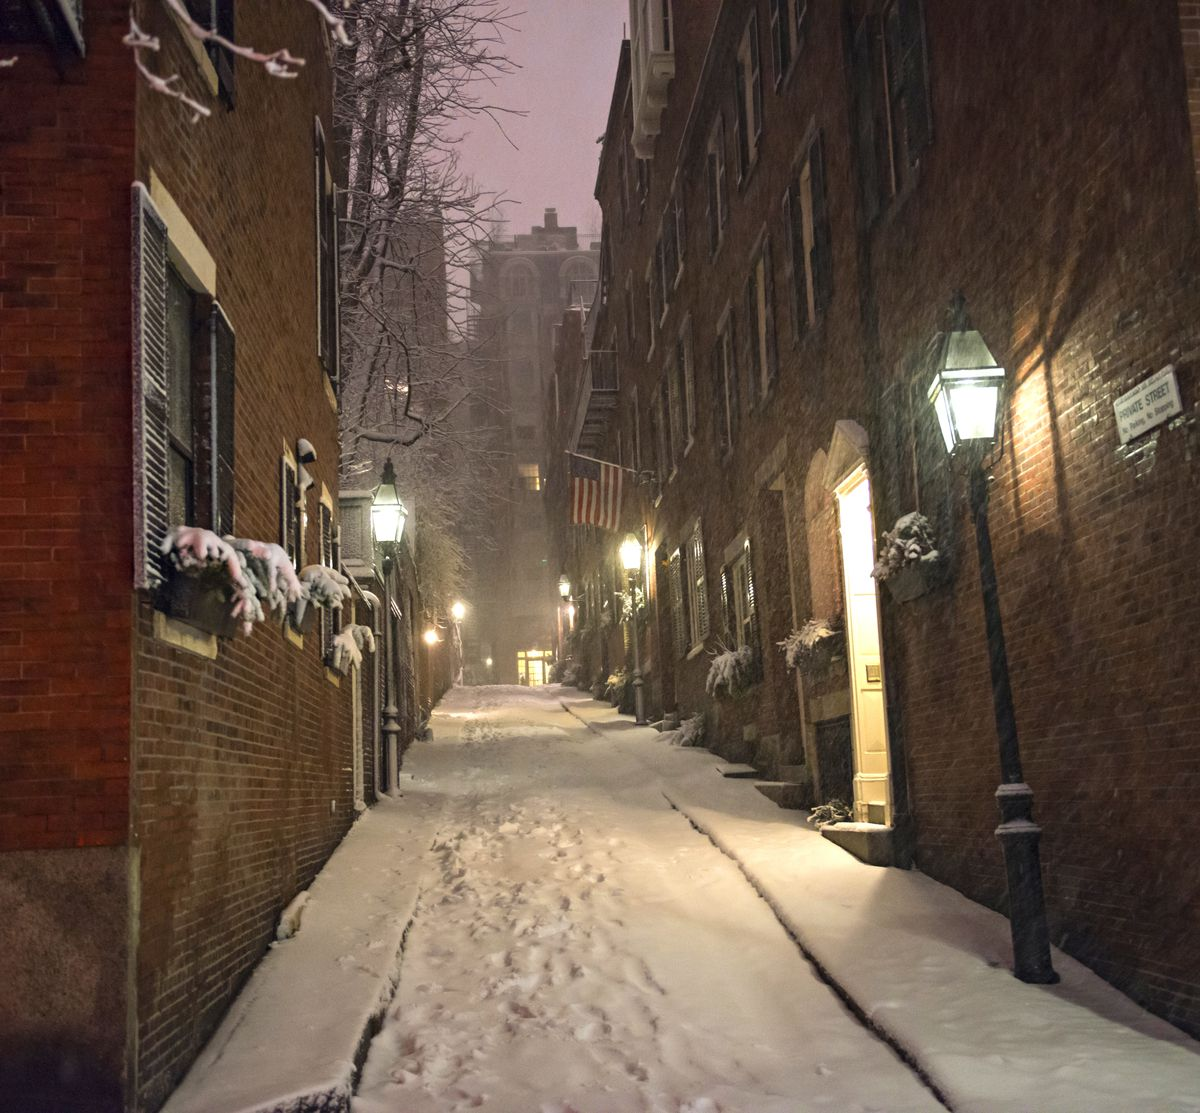 A narrow city street at nighttime with townhouses on either side, and there's snow on the ground.